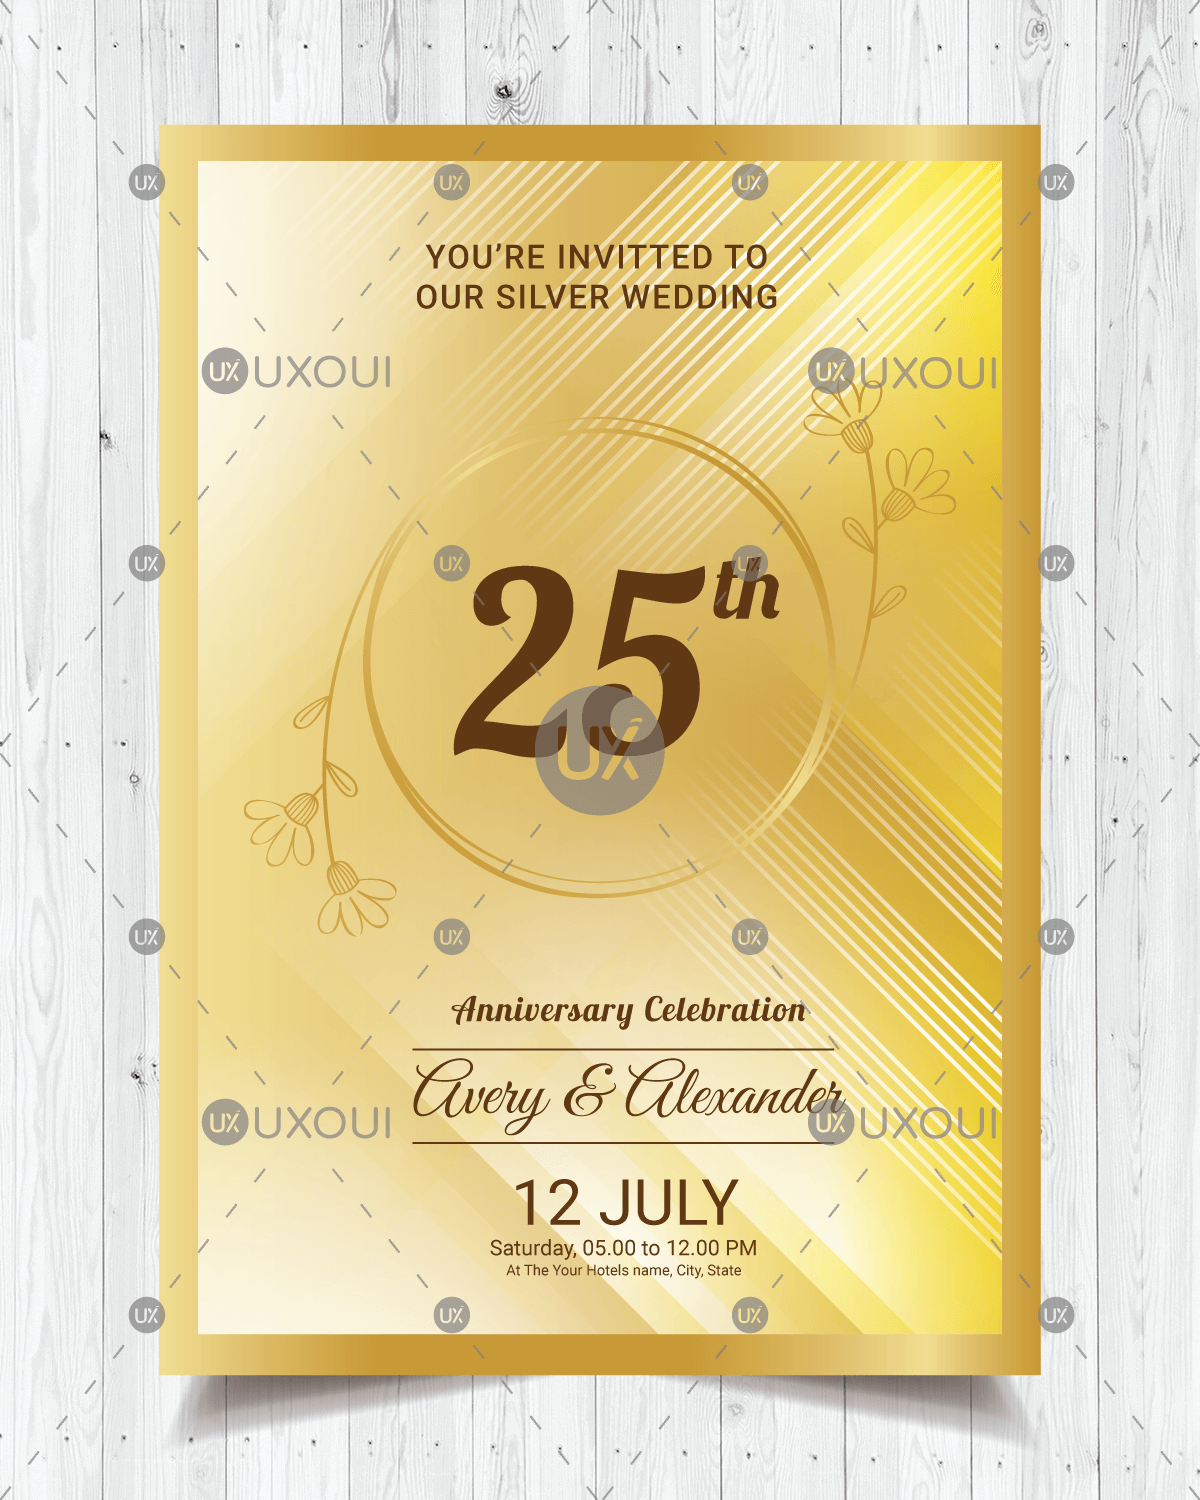 Happy wedding anniversary invitation card design with ornaments in golden  style vector | UXoUI